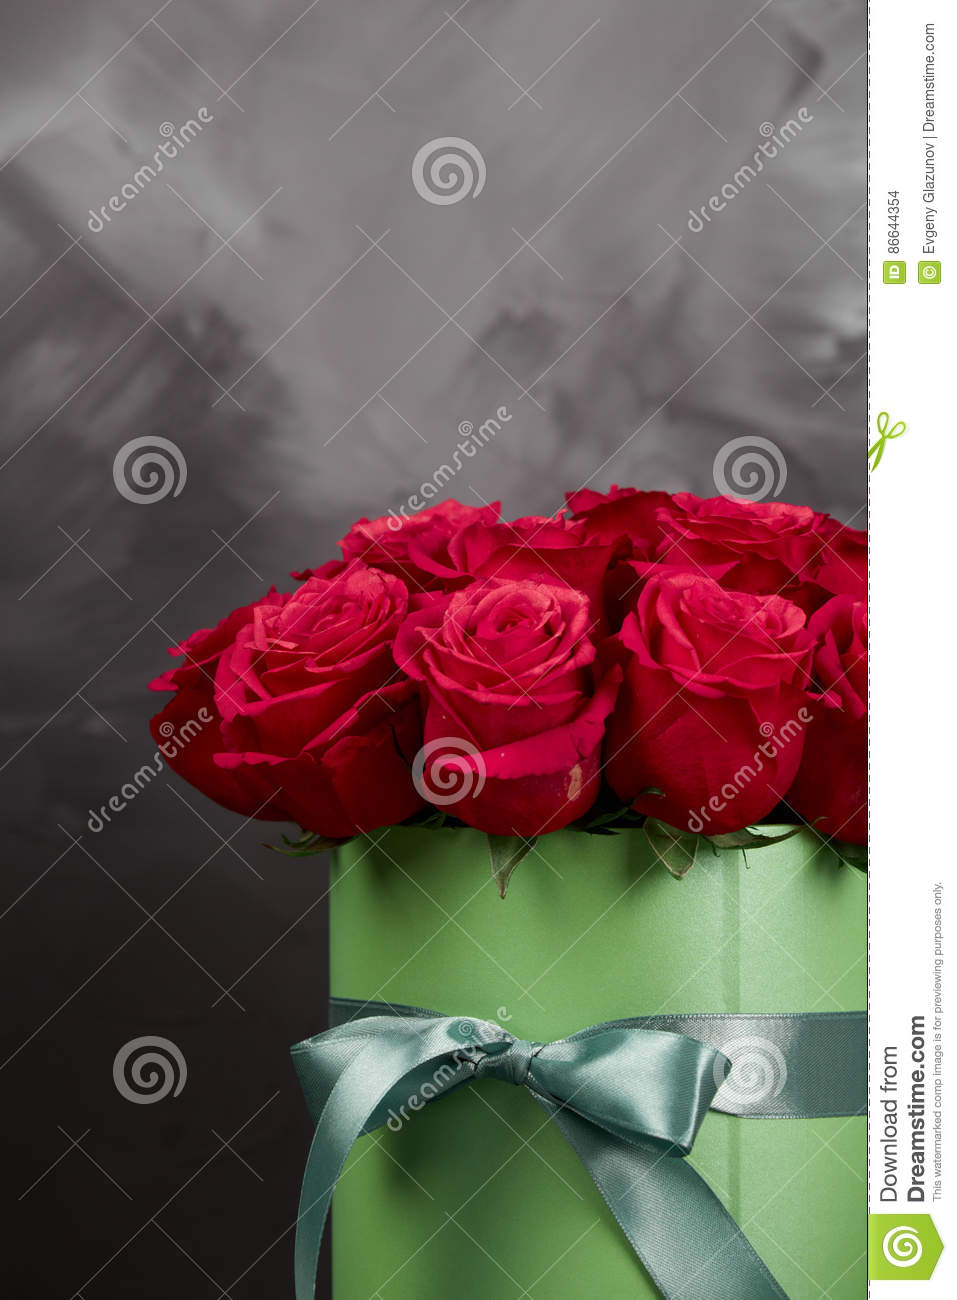 Bouquet Of Delicate Red Roses In Green Gift Box On Dark Grey